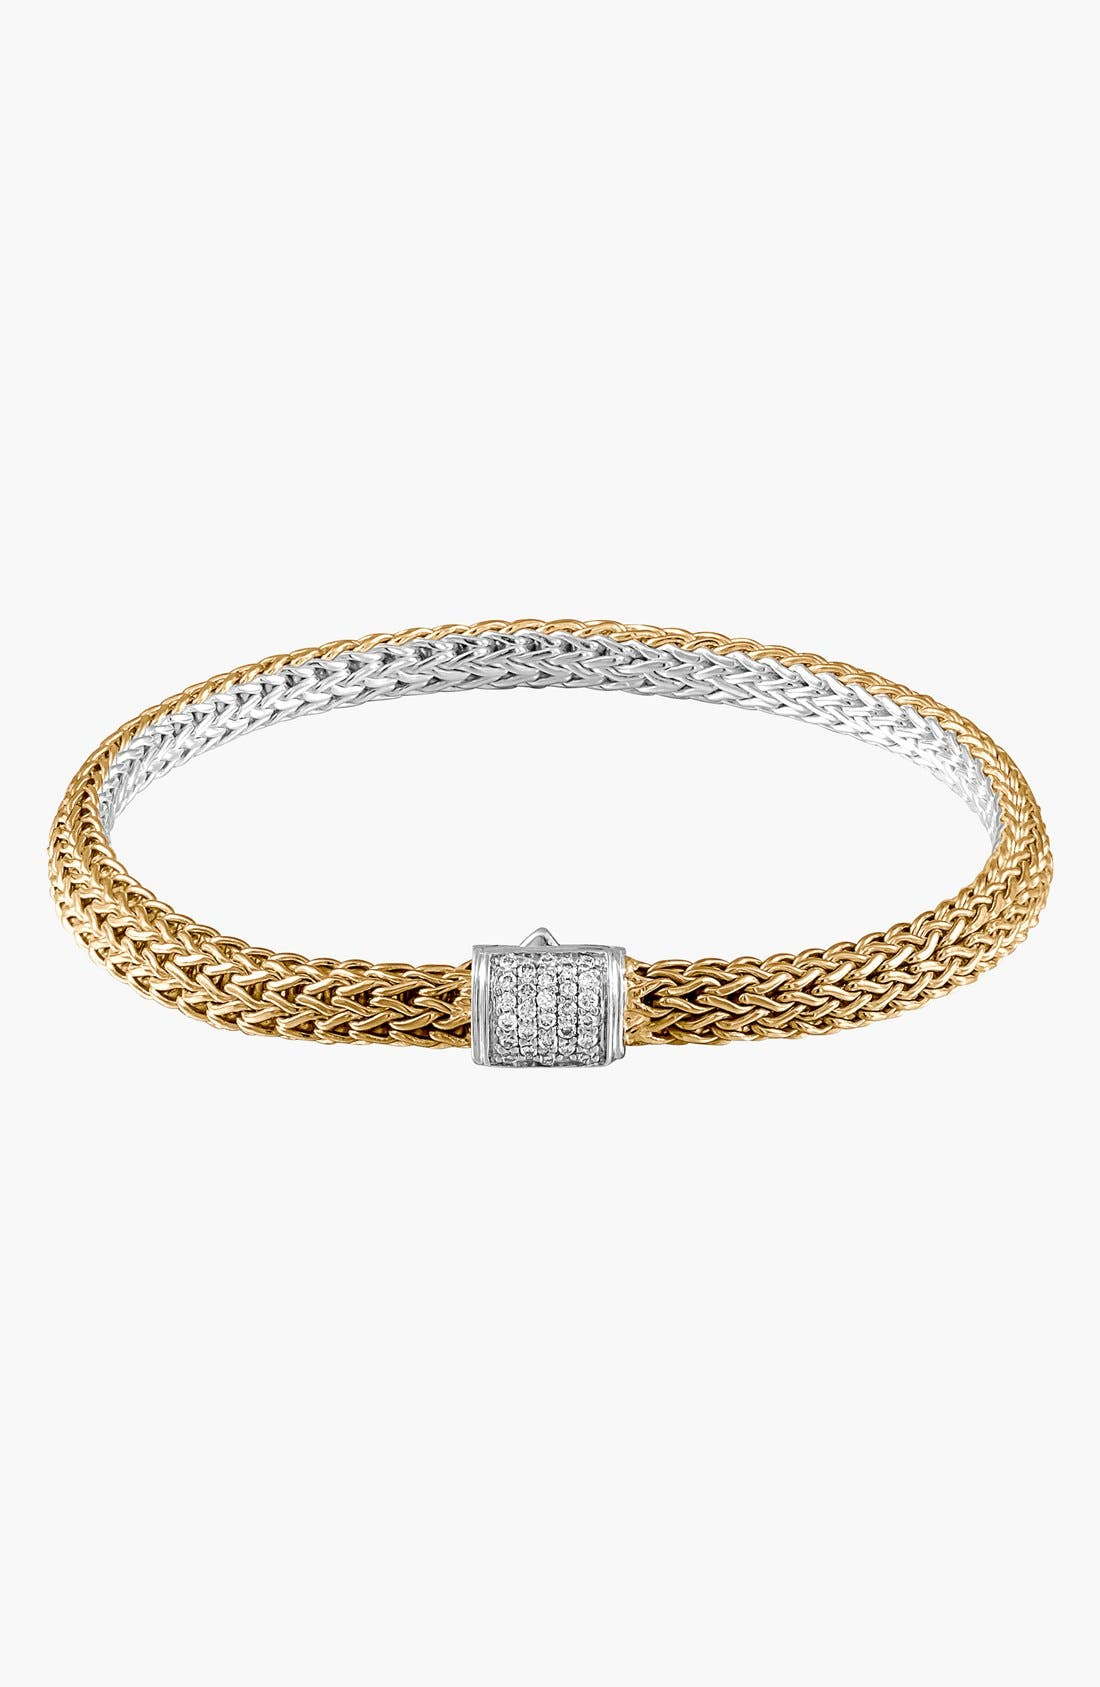 'Classic Chain' Extra Small Bracelet,                             Main thumbnail 1, color,                             Gold/ Silver/ Diamond